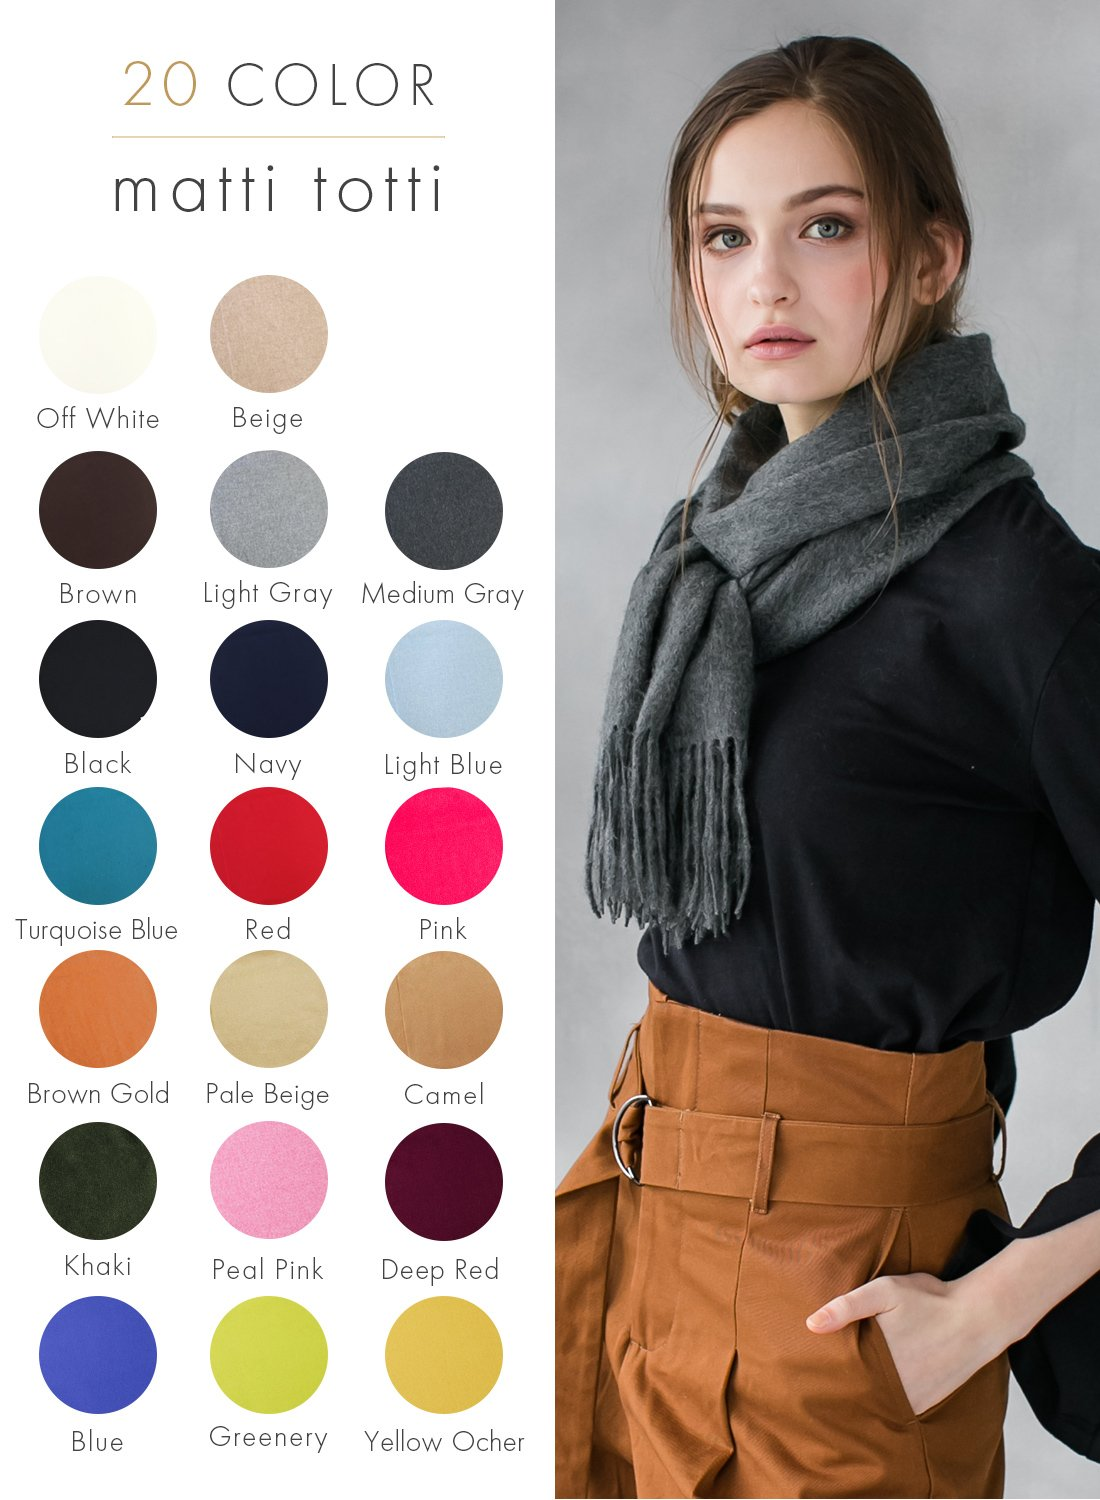 M Gray 100% Cashmere Shawl Stole Women's 2017 Gift Scarves Wrap Blanket A0514B2-5 by matti totti (Image #1)